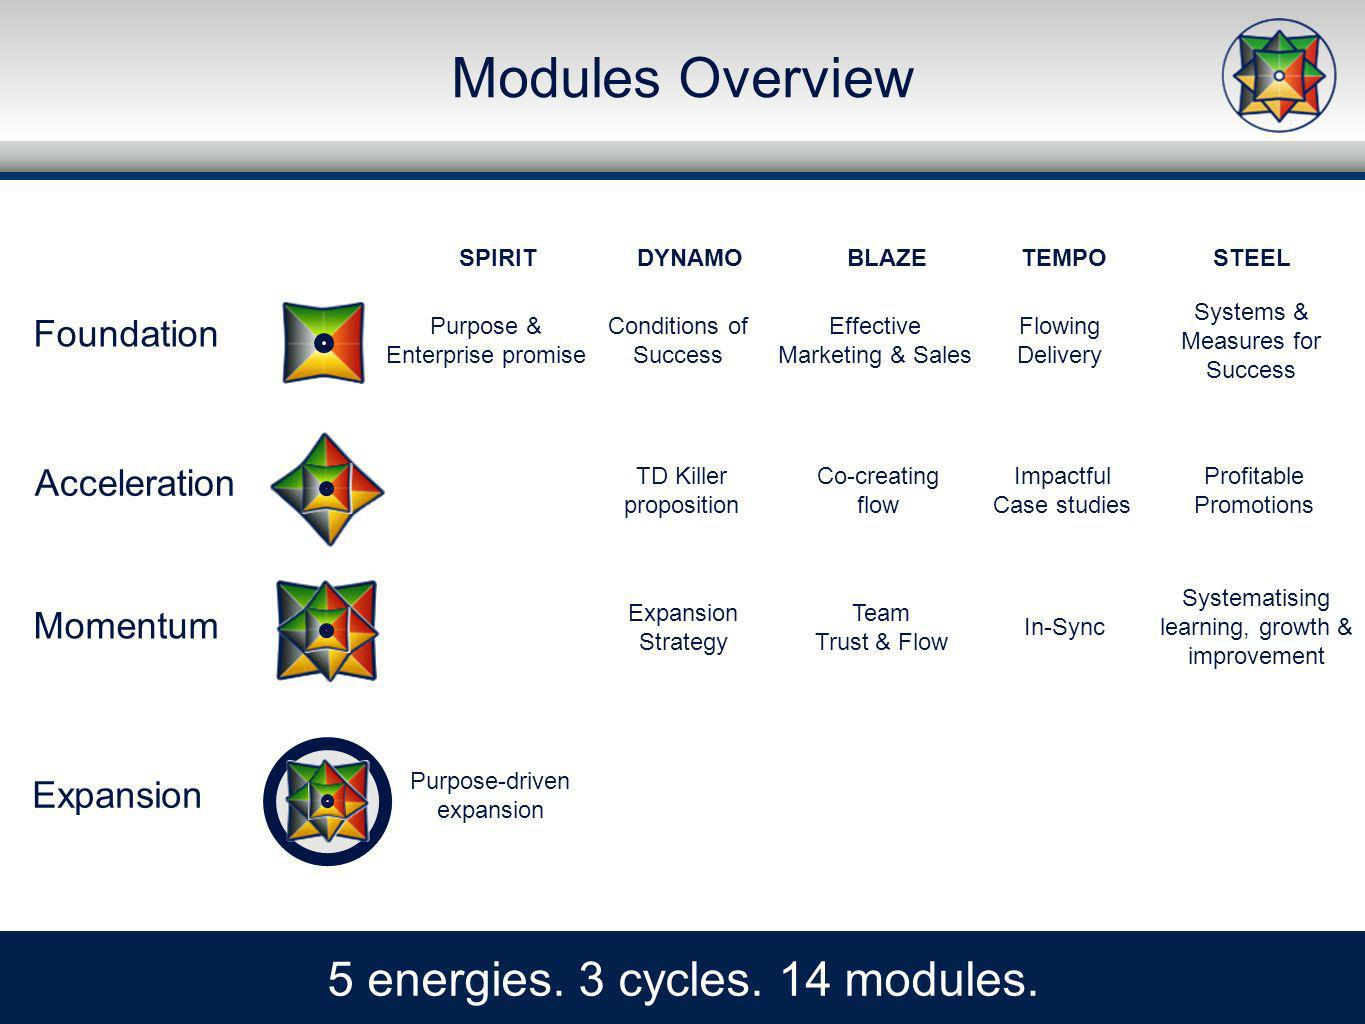 Modules Overview 5 energies. 3 cycles. 14 modules.